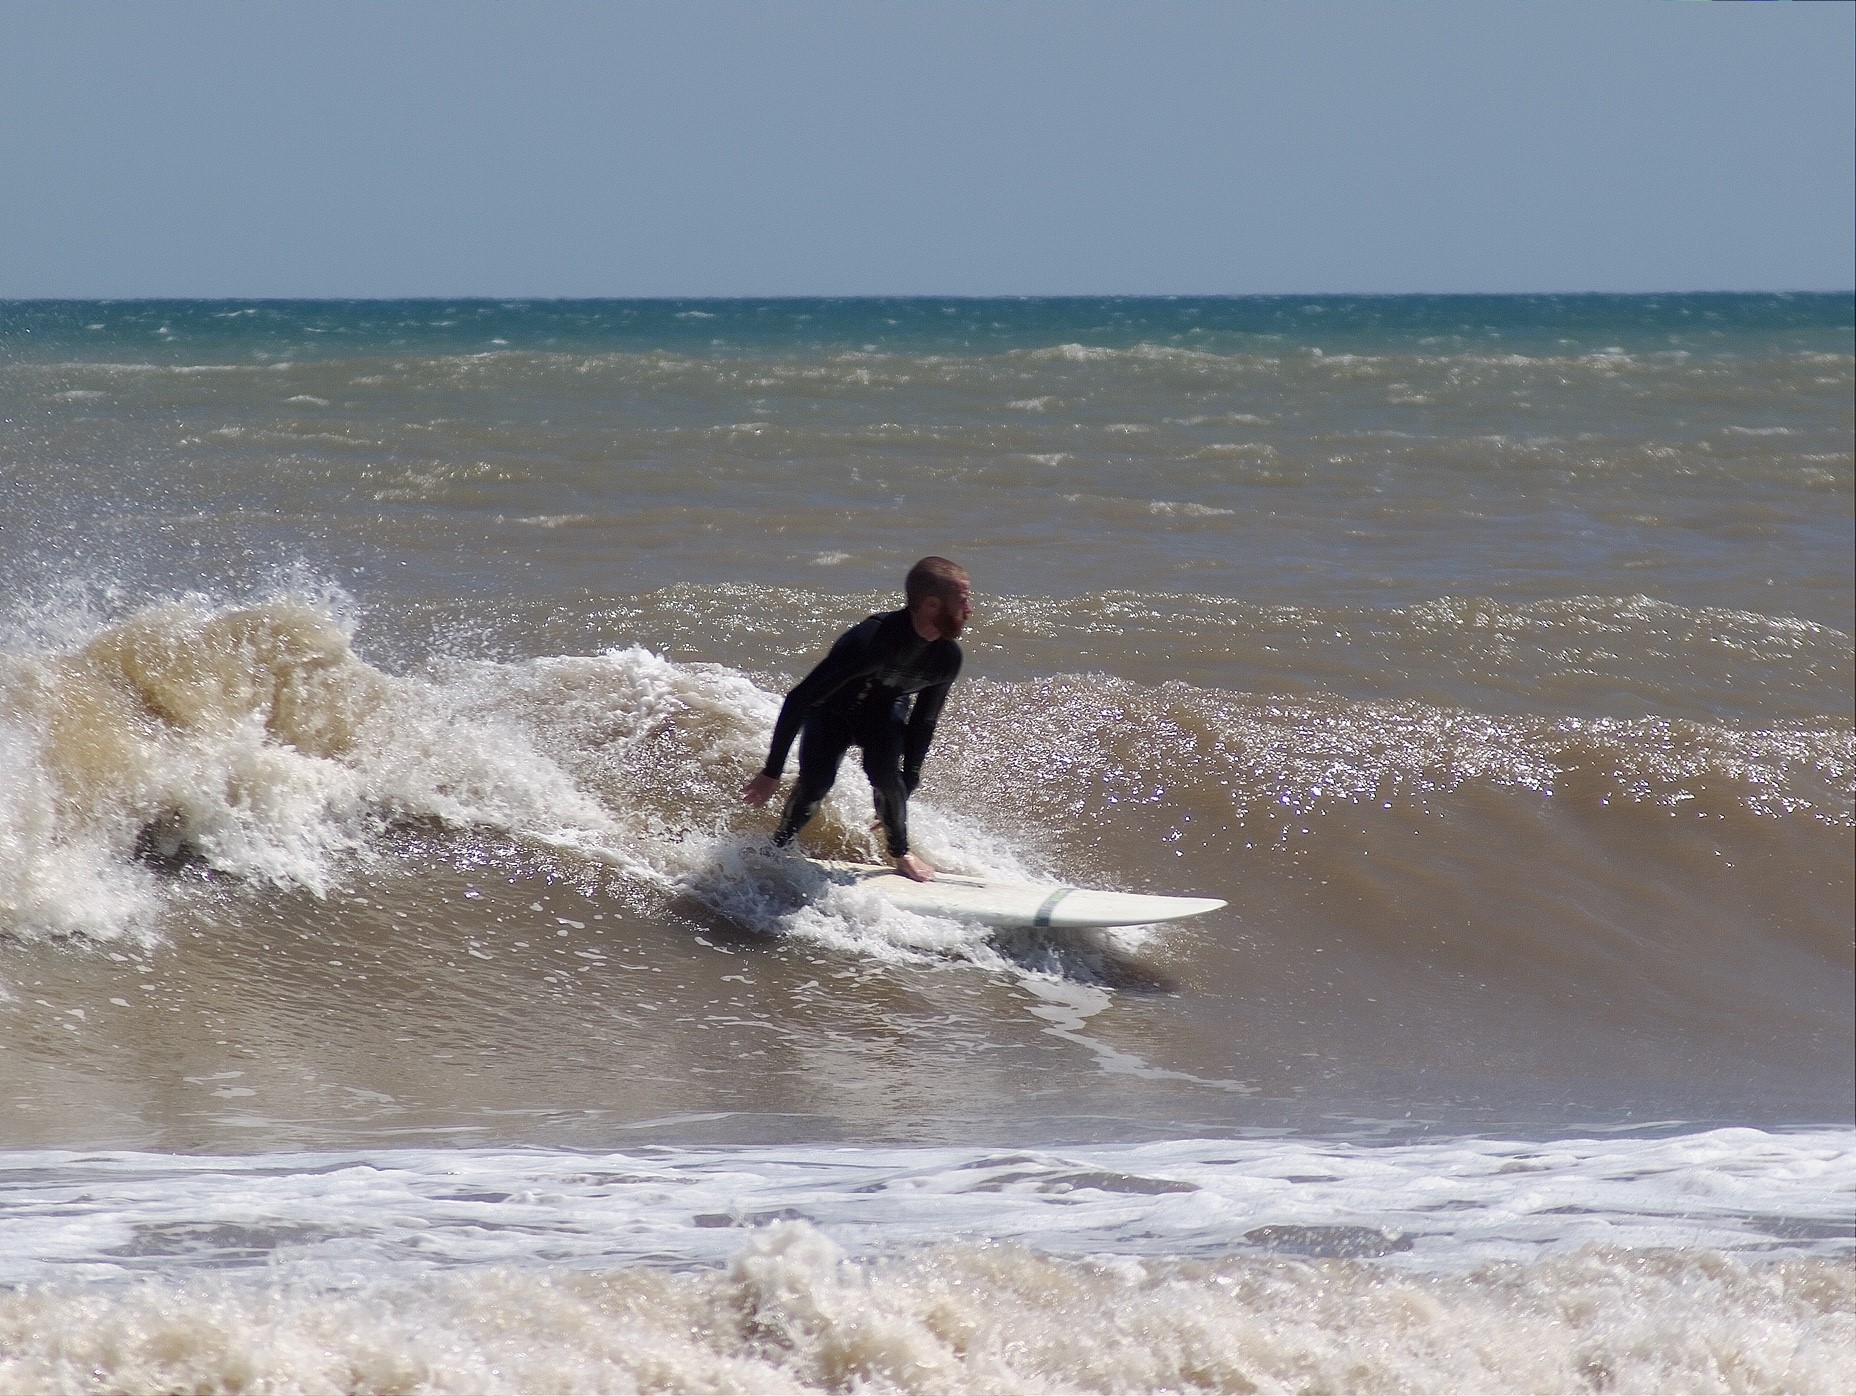 Surfing at Mustang Island State Park